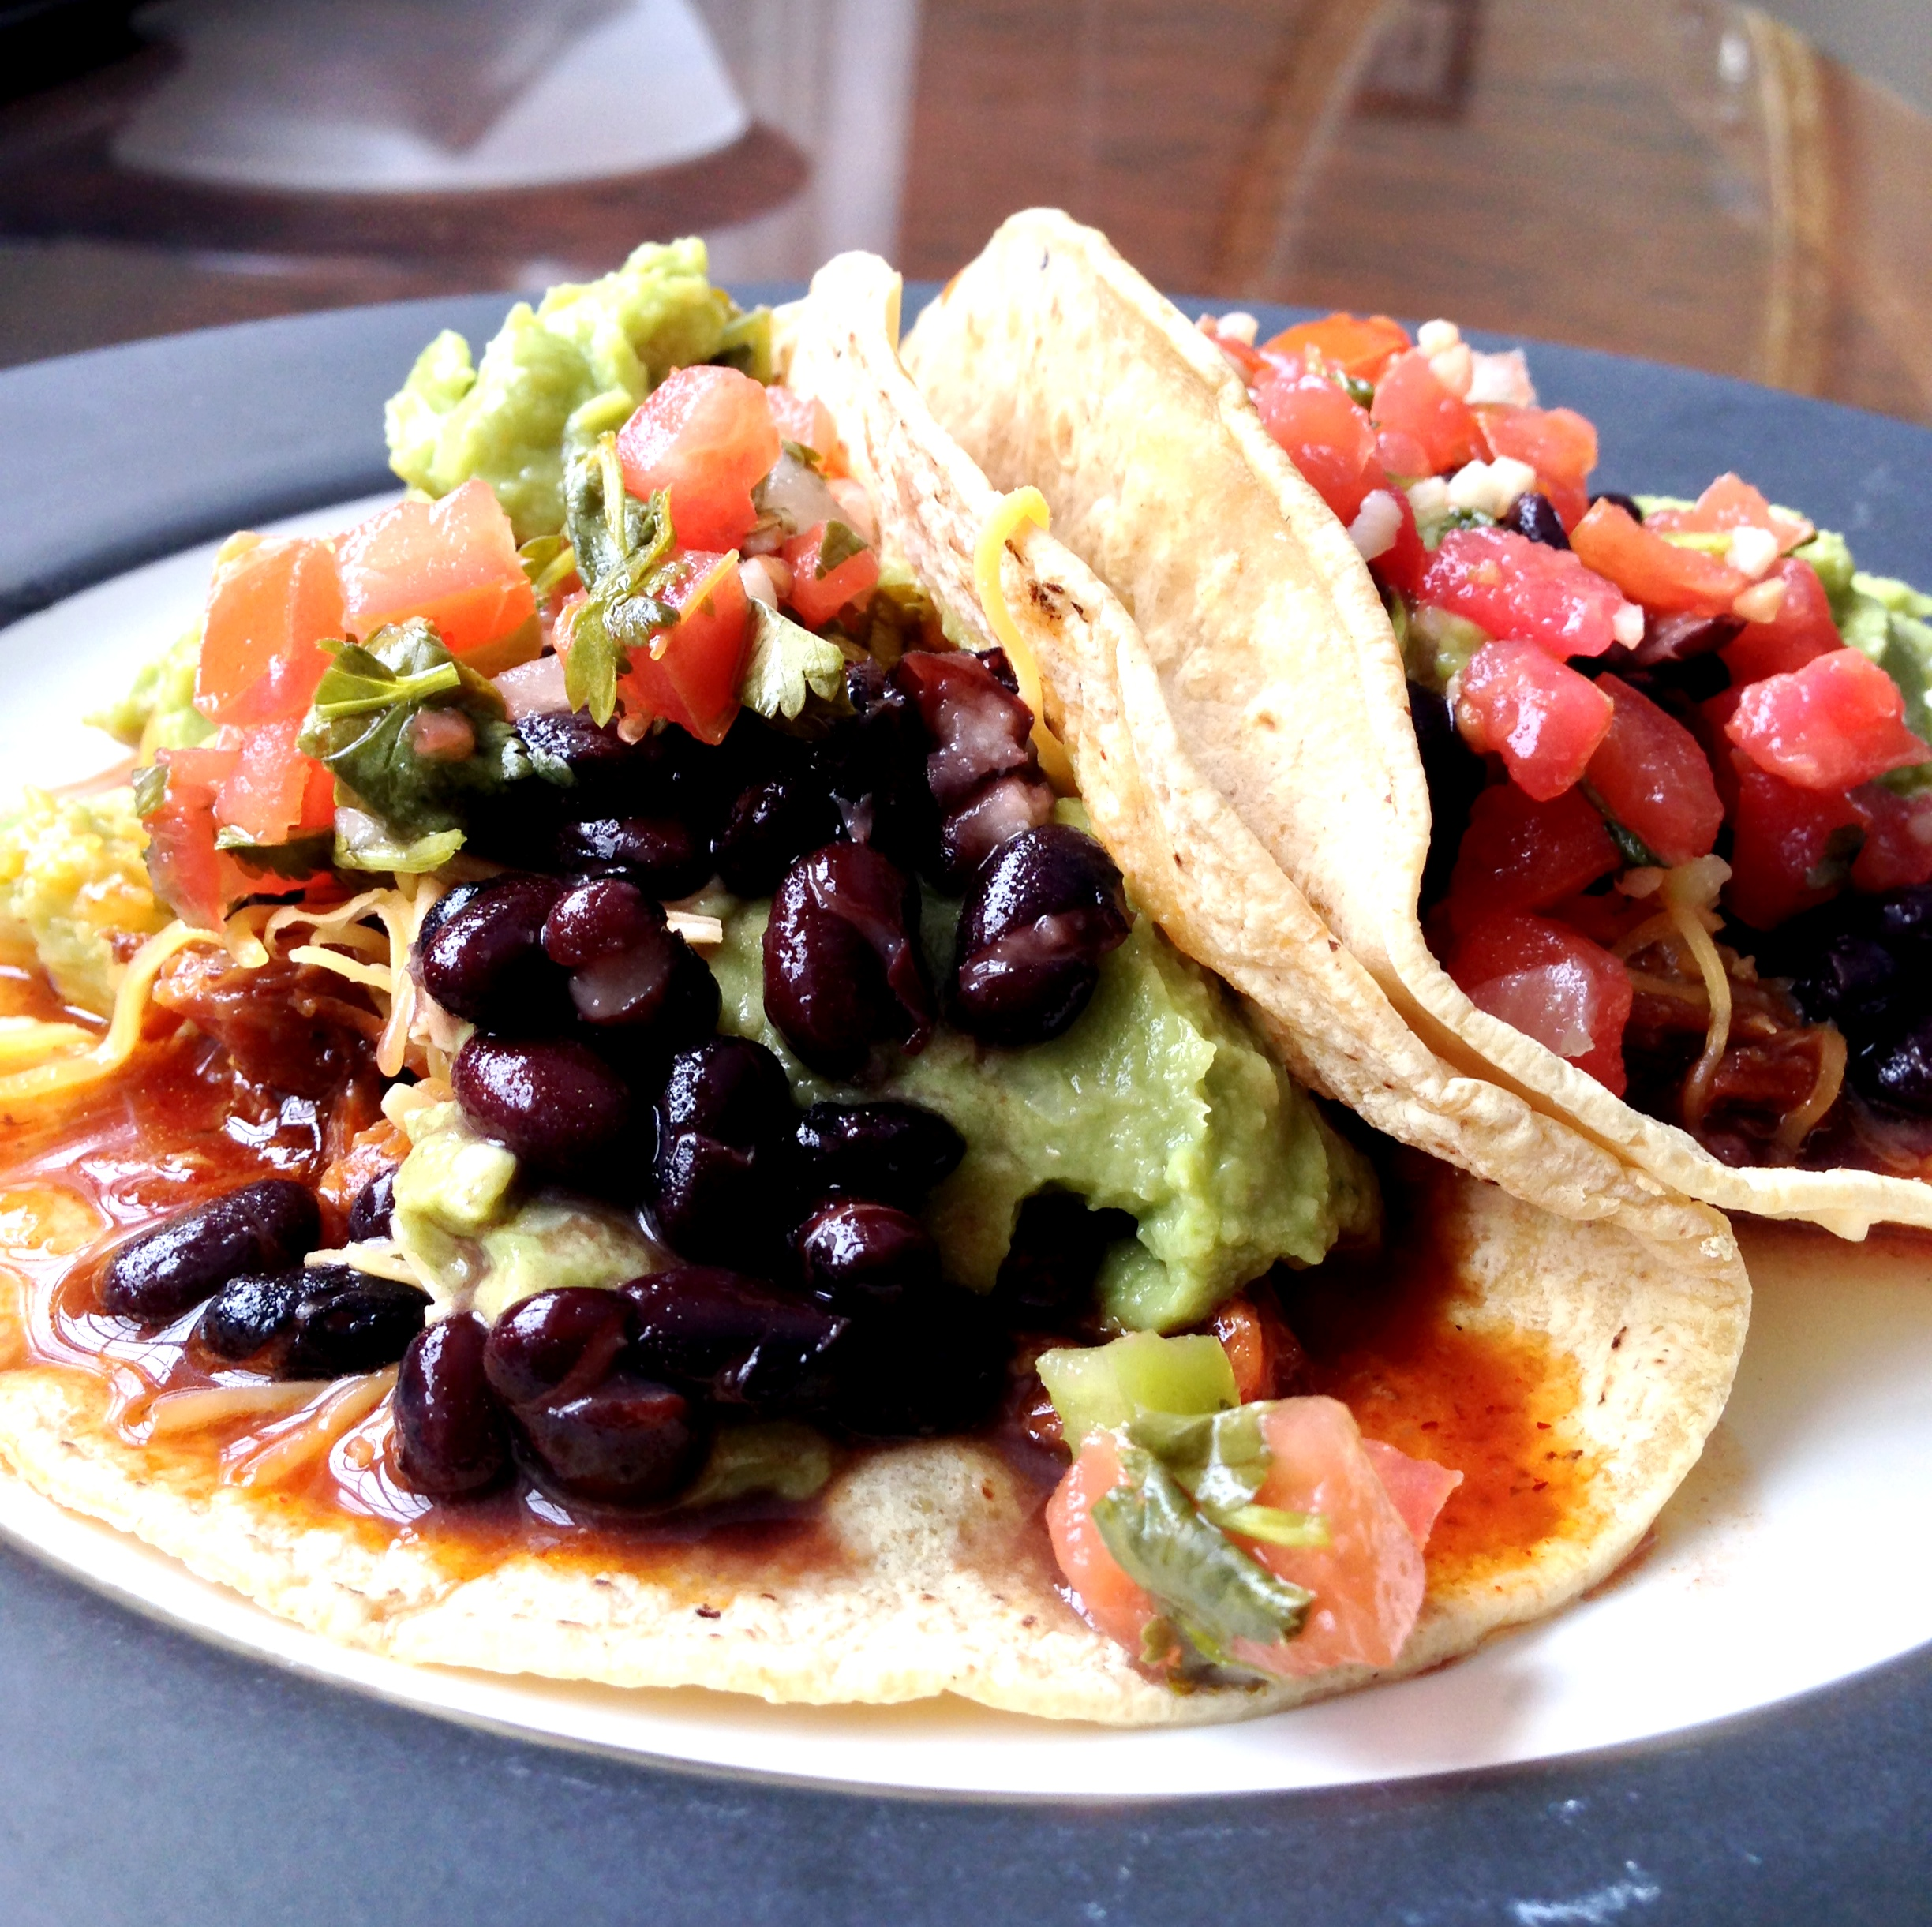 Black Bean and Barbecue Shredded Pork Tacos | A Home In College Hill